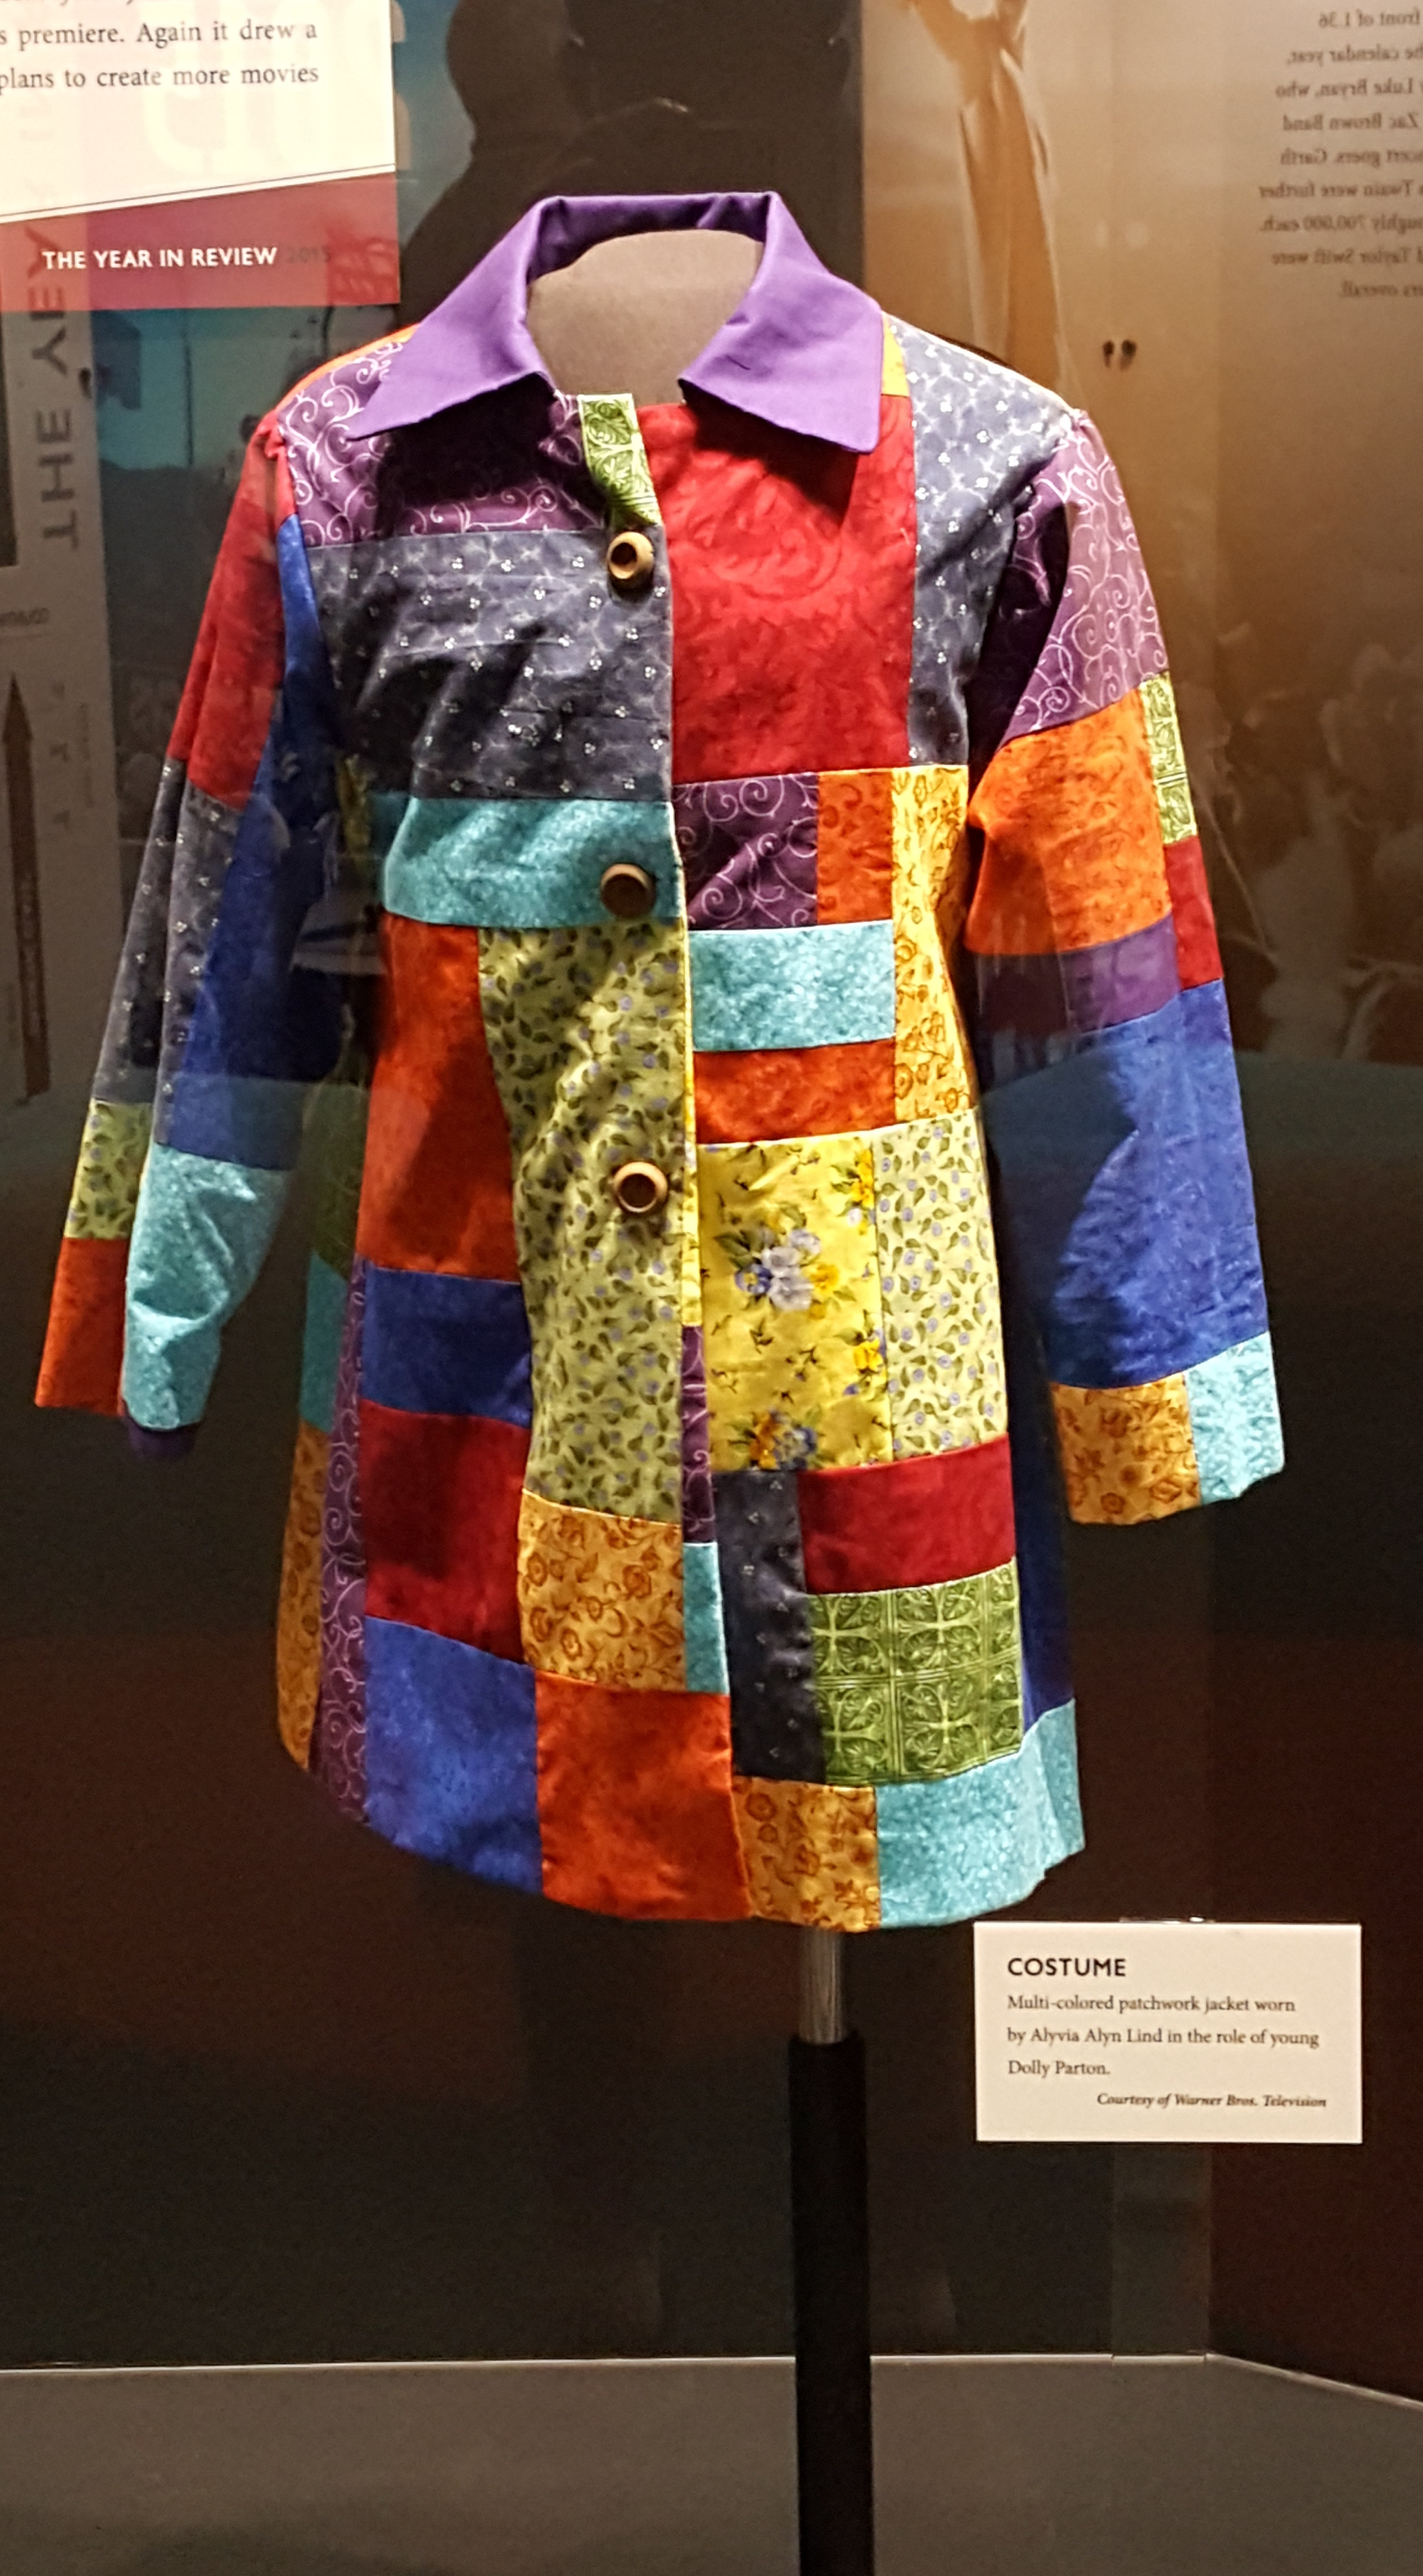 dolly partons coat of many colors wikiwand - Dolly Parton Coat Of Many Colors Book